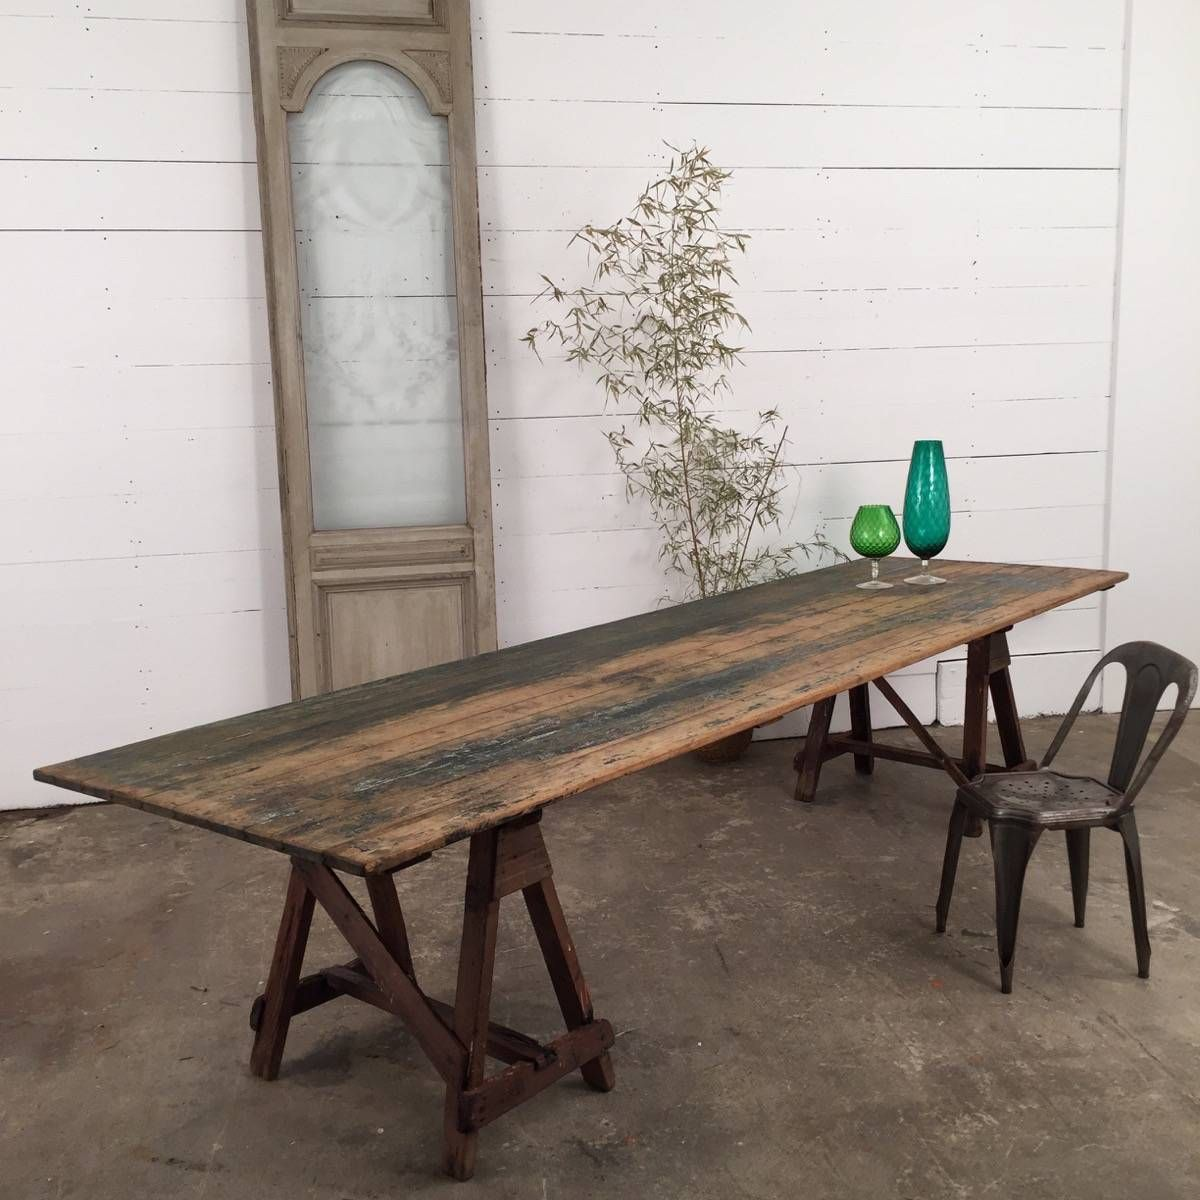 Large Industrial Wooden Trestle Table   Espace Nord Ouest